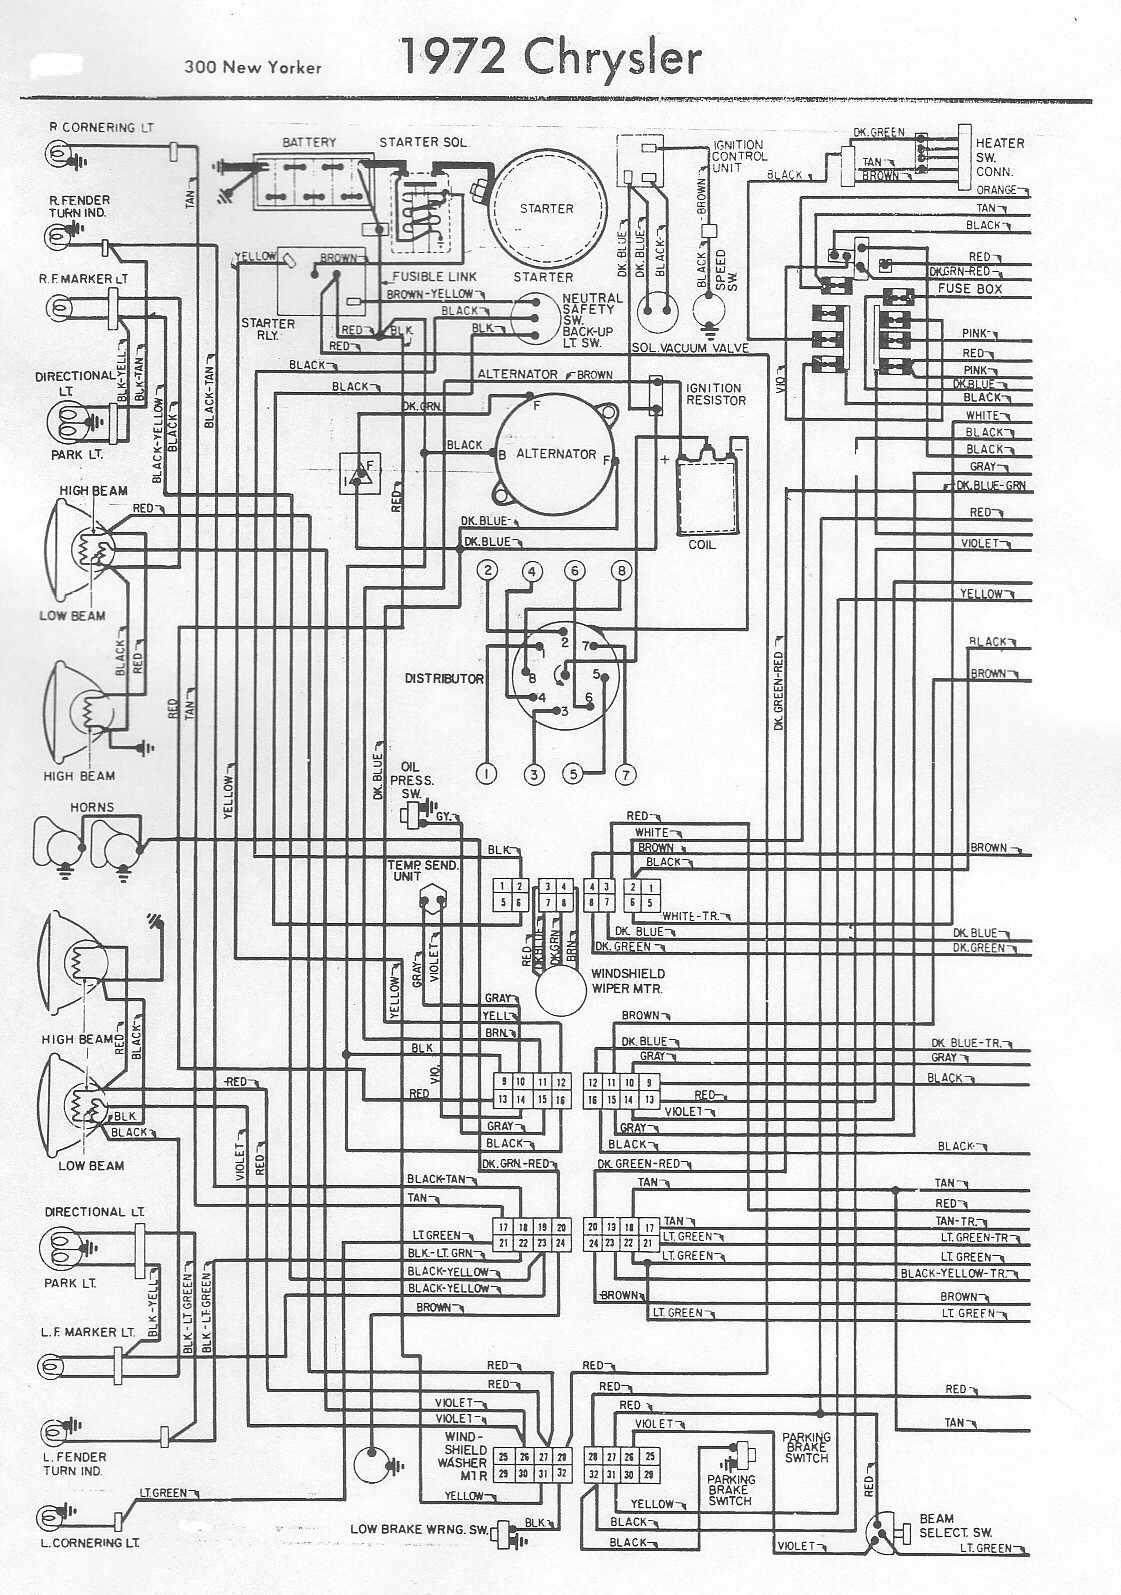 1989 Chrysler Lebaron Power Steering Diagram Wiring